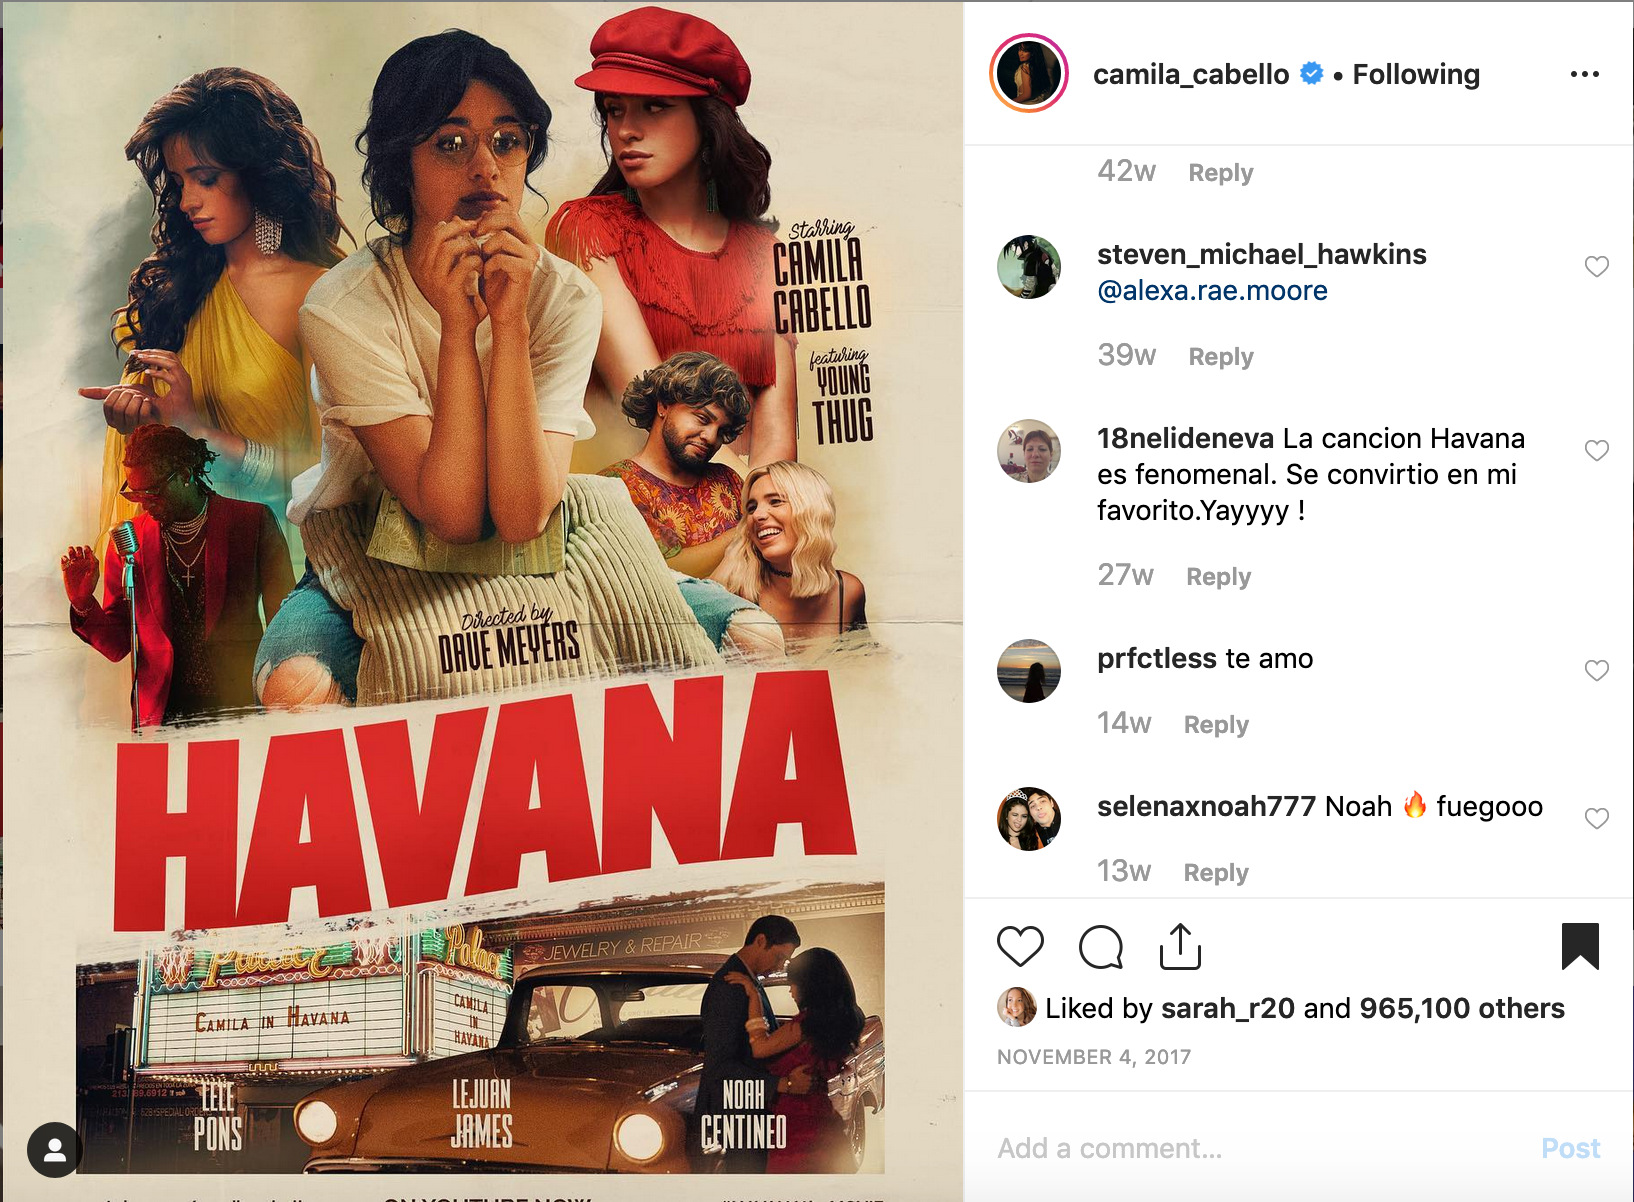 Camila Cabello previews Havana the Movie on Instagram